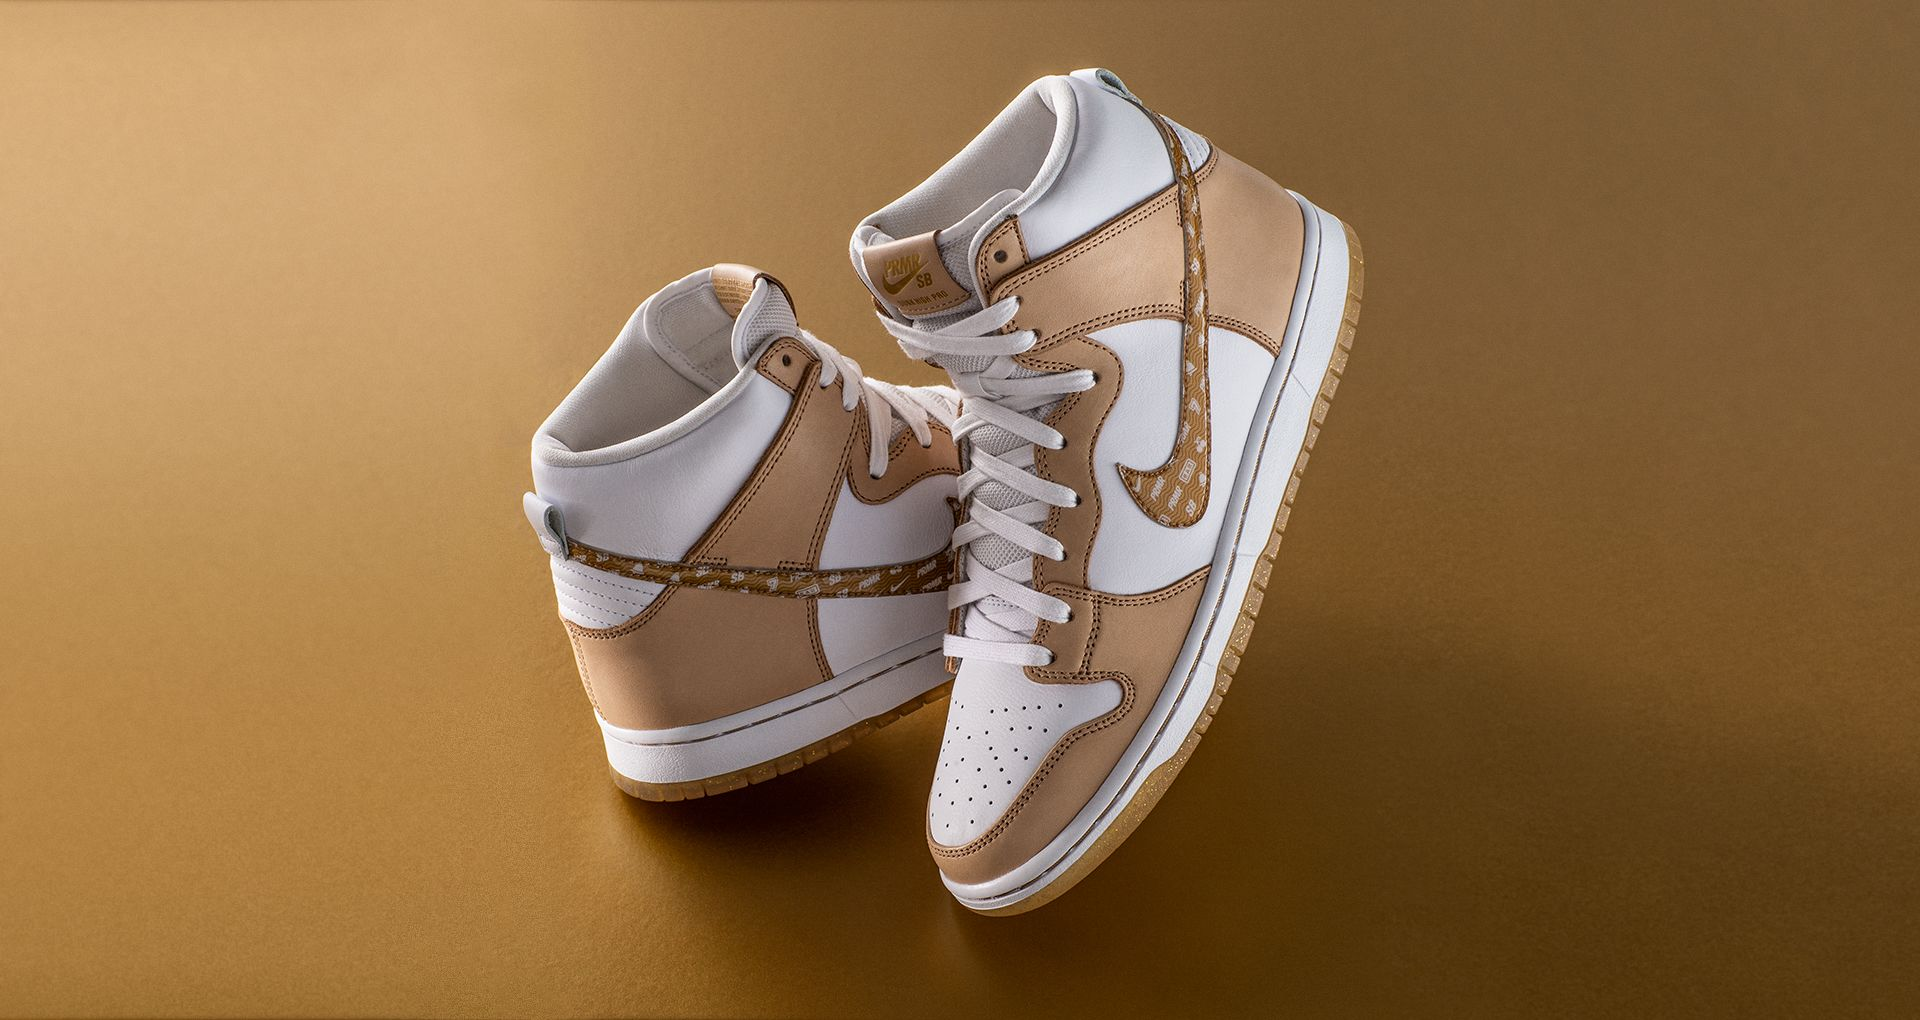 the best attitude 9171d 18e75 After experimenting with some bold options and patterns, Premier and Nike  designers landed on a premium, vachetta tan and white leather combination  with ...